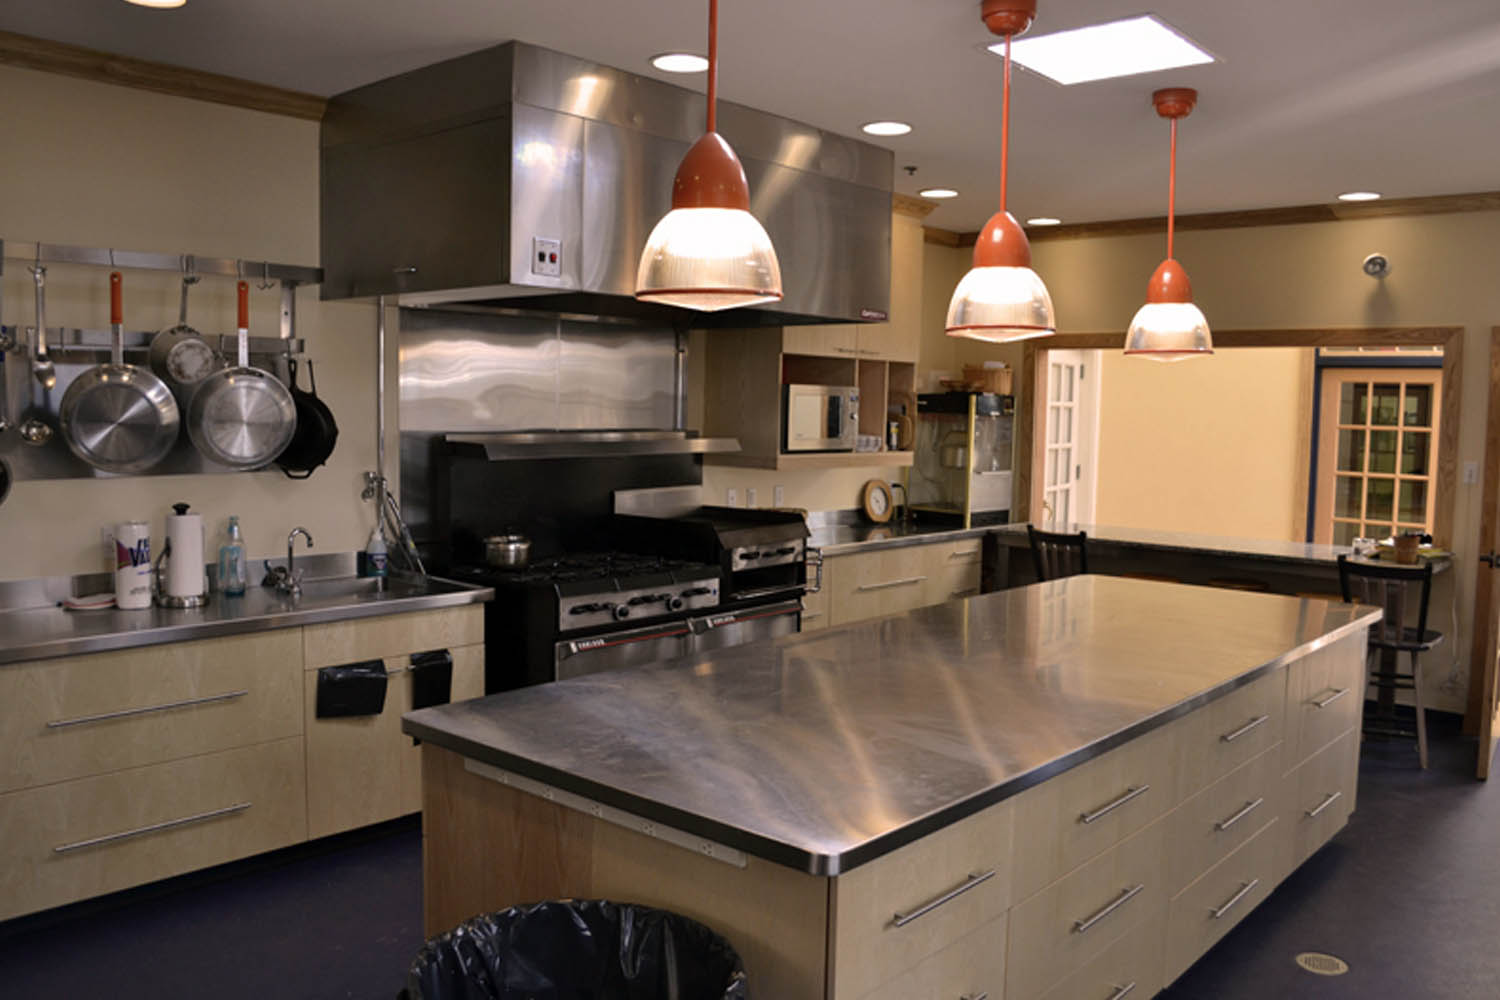 The large kitchen space works well for everything from pot-lucks to catered events.